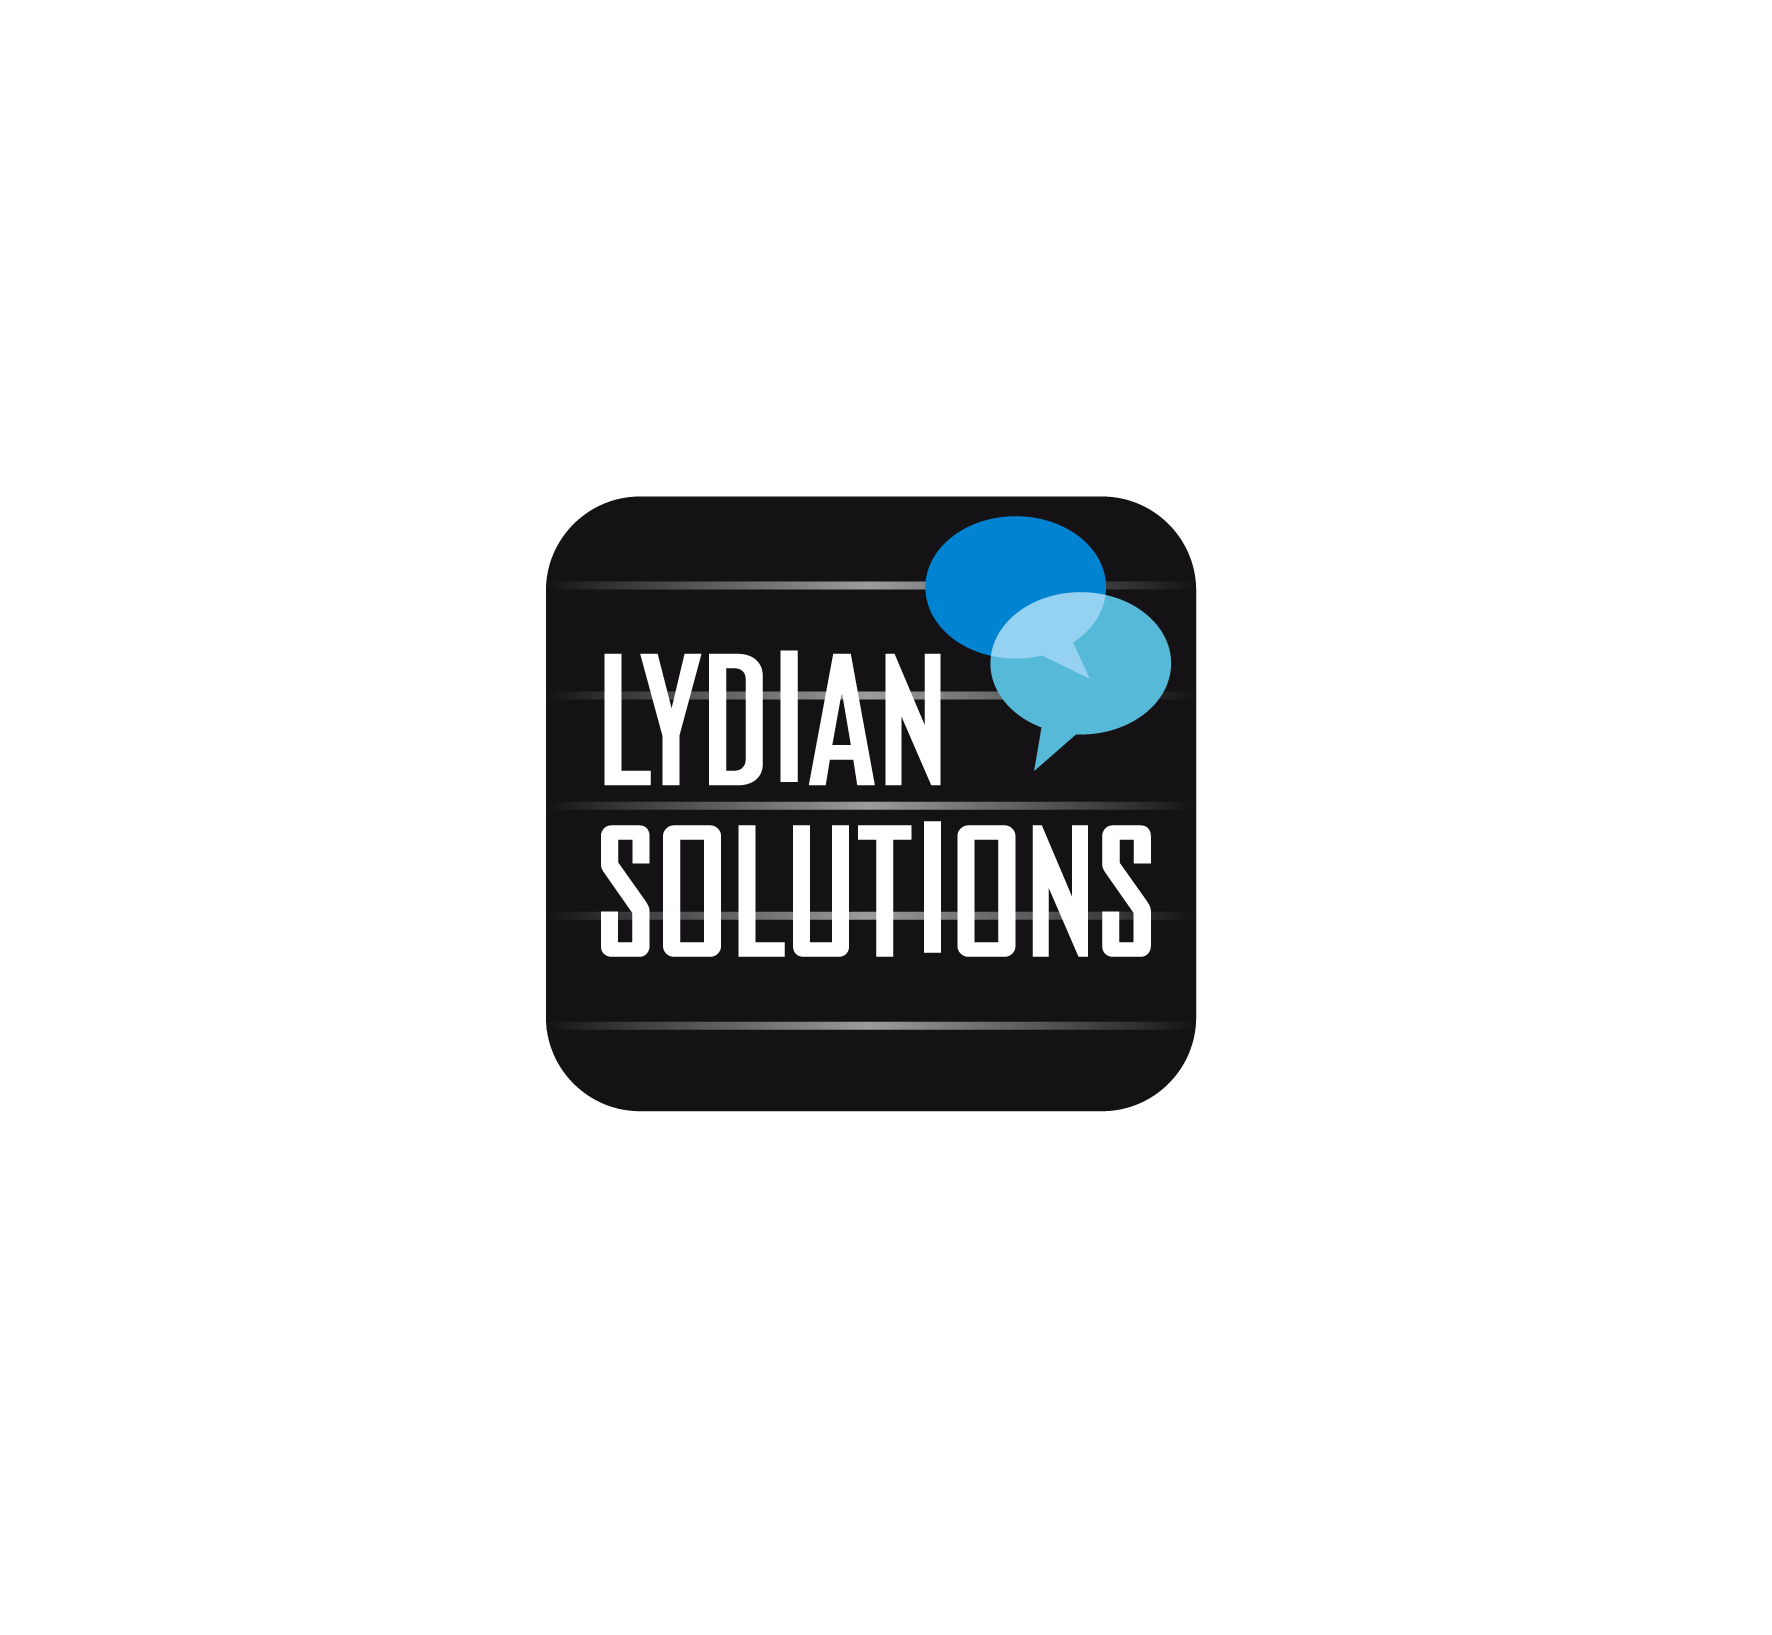 Logo Design by luna - Entry No. 111 in the Logo Design Contest Fun Logo Design for Lydian Solutions.